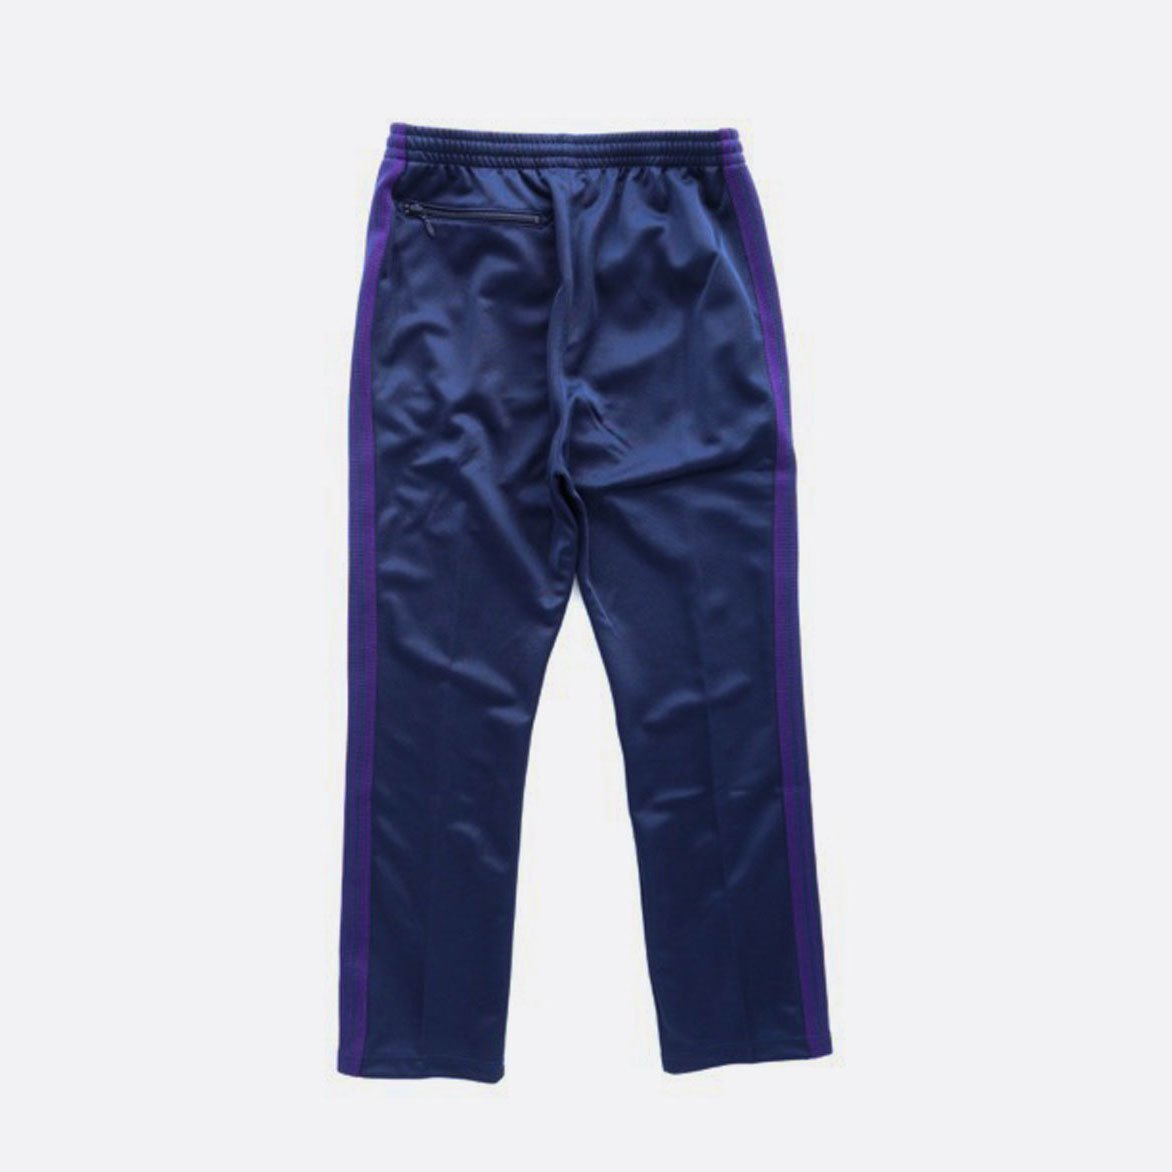 NEEDLES  NARROW TRACK PANT - POLY SMOOTH  (NAVY)2